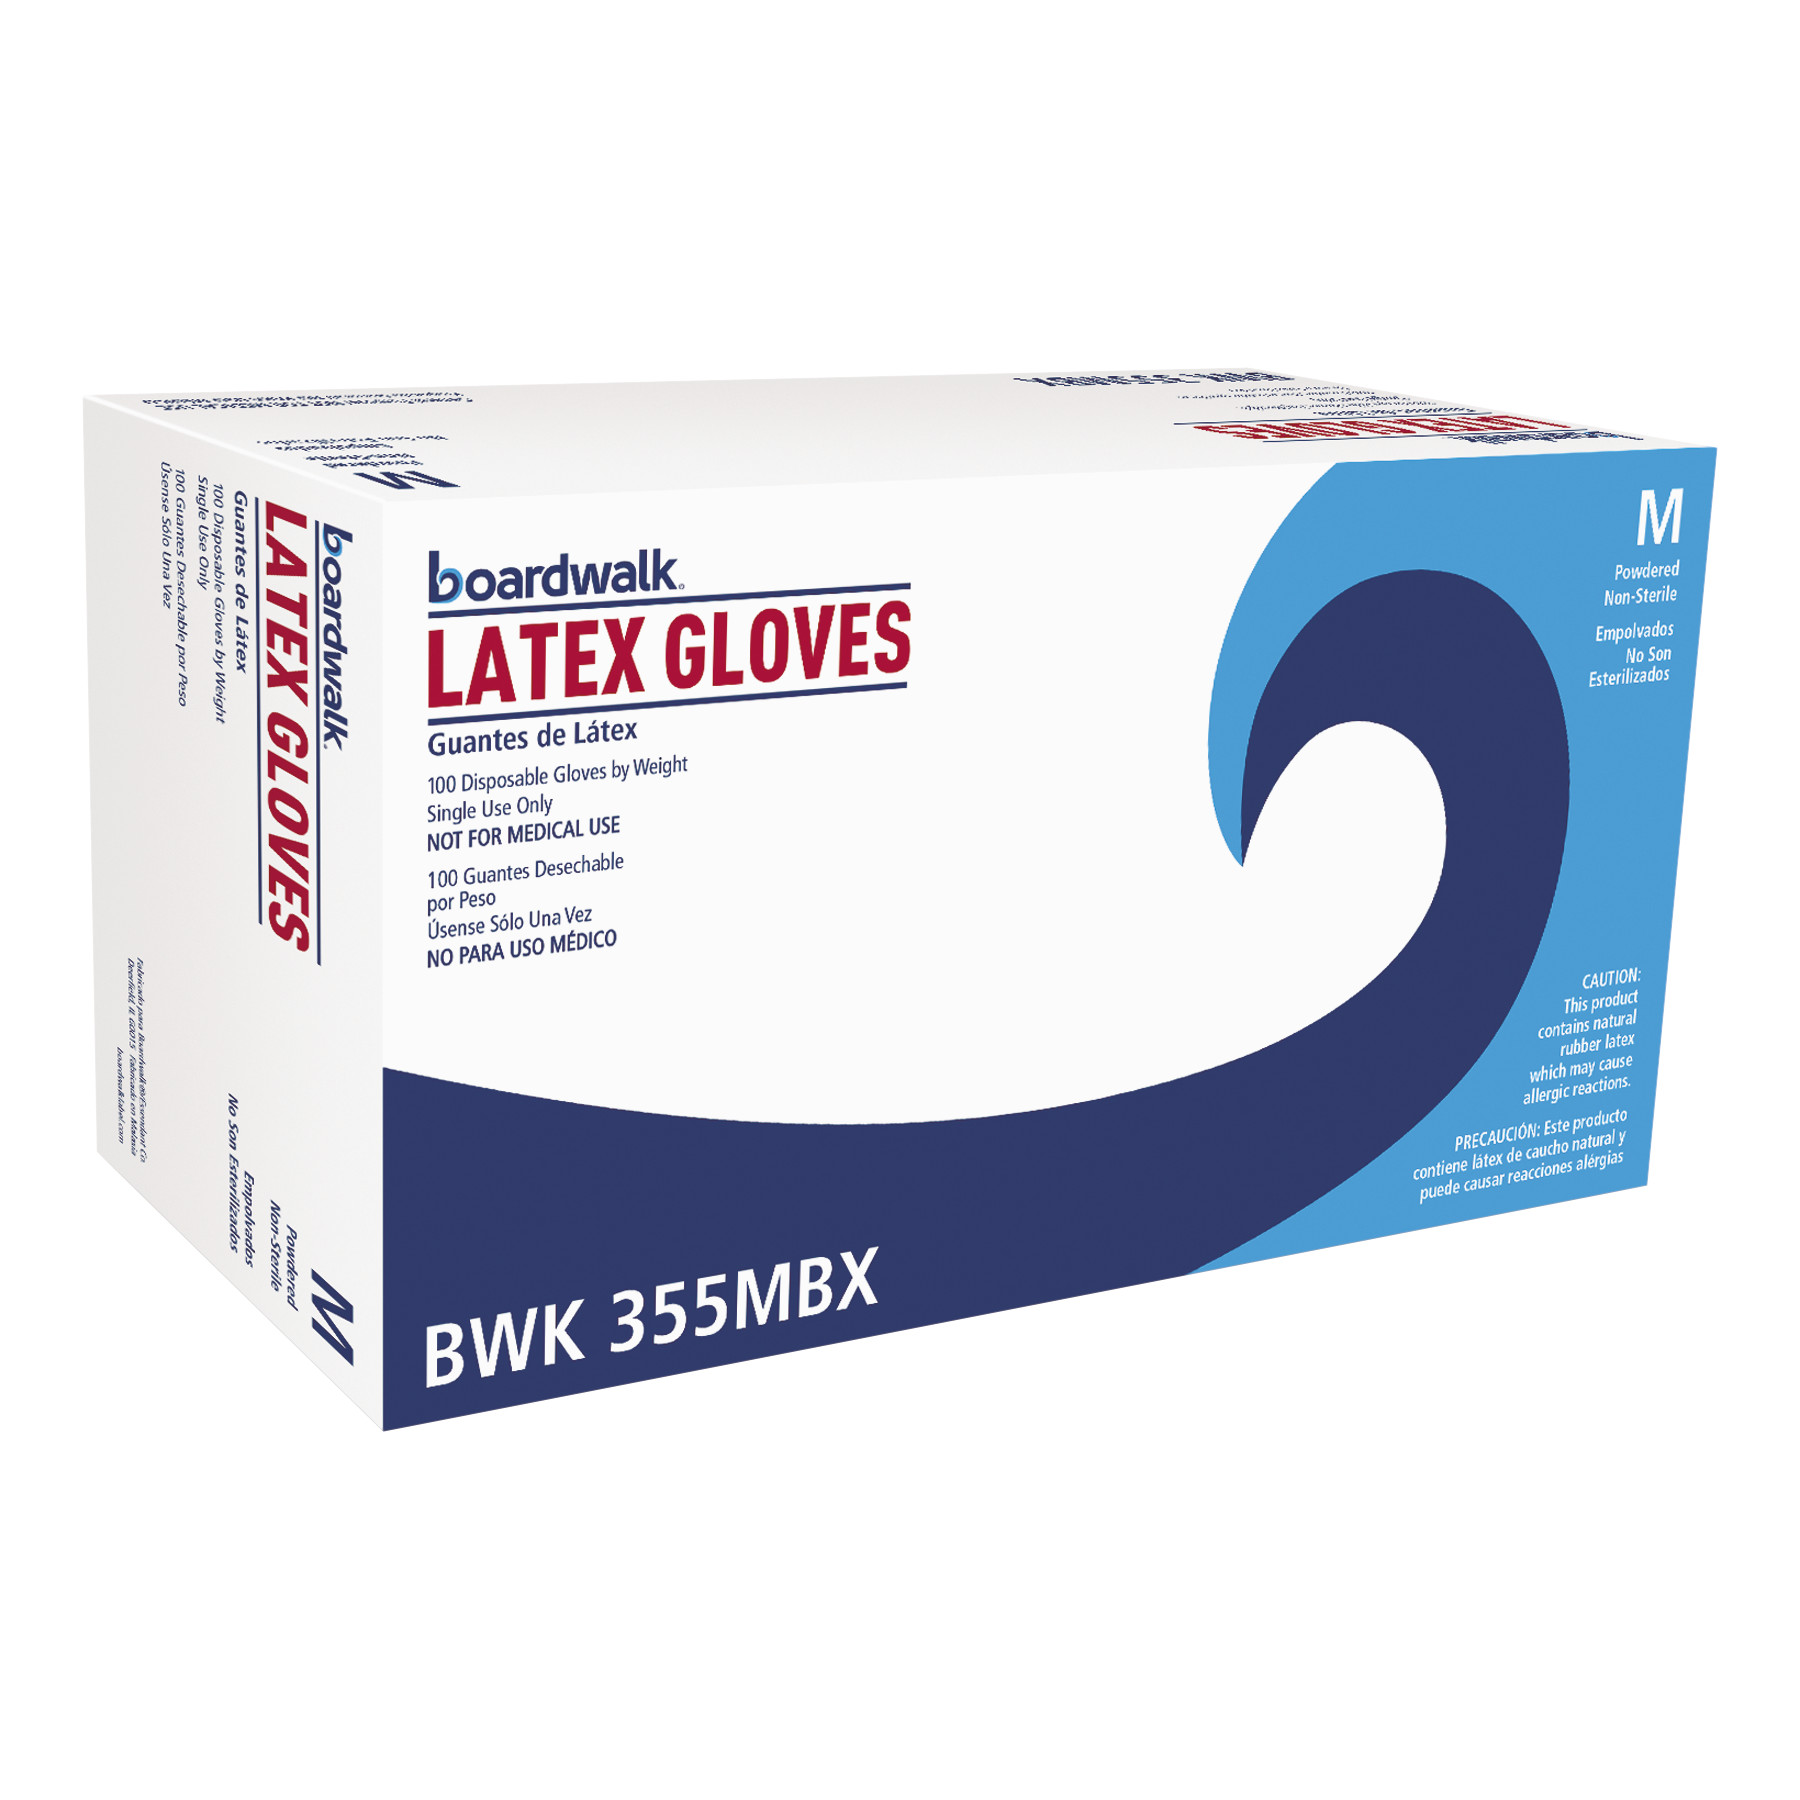 Boardwalk General Purpose Powdered Latex Gloves, Medium, 100/Box -BWK355MBX